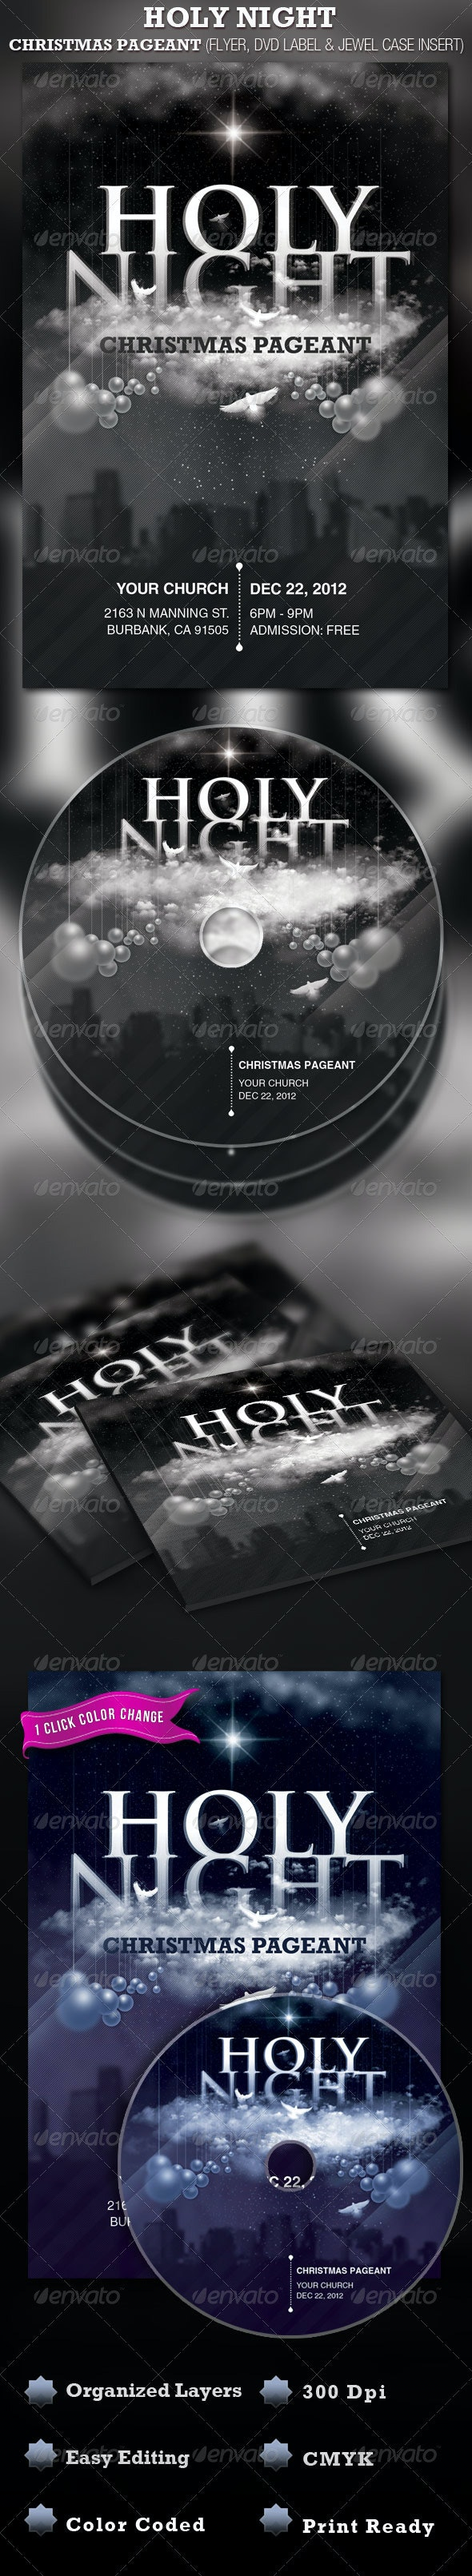 Holy Night Chirstmas Flyer and CD Label Template - Church Flyers